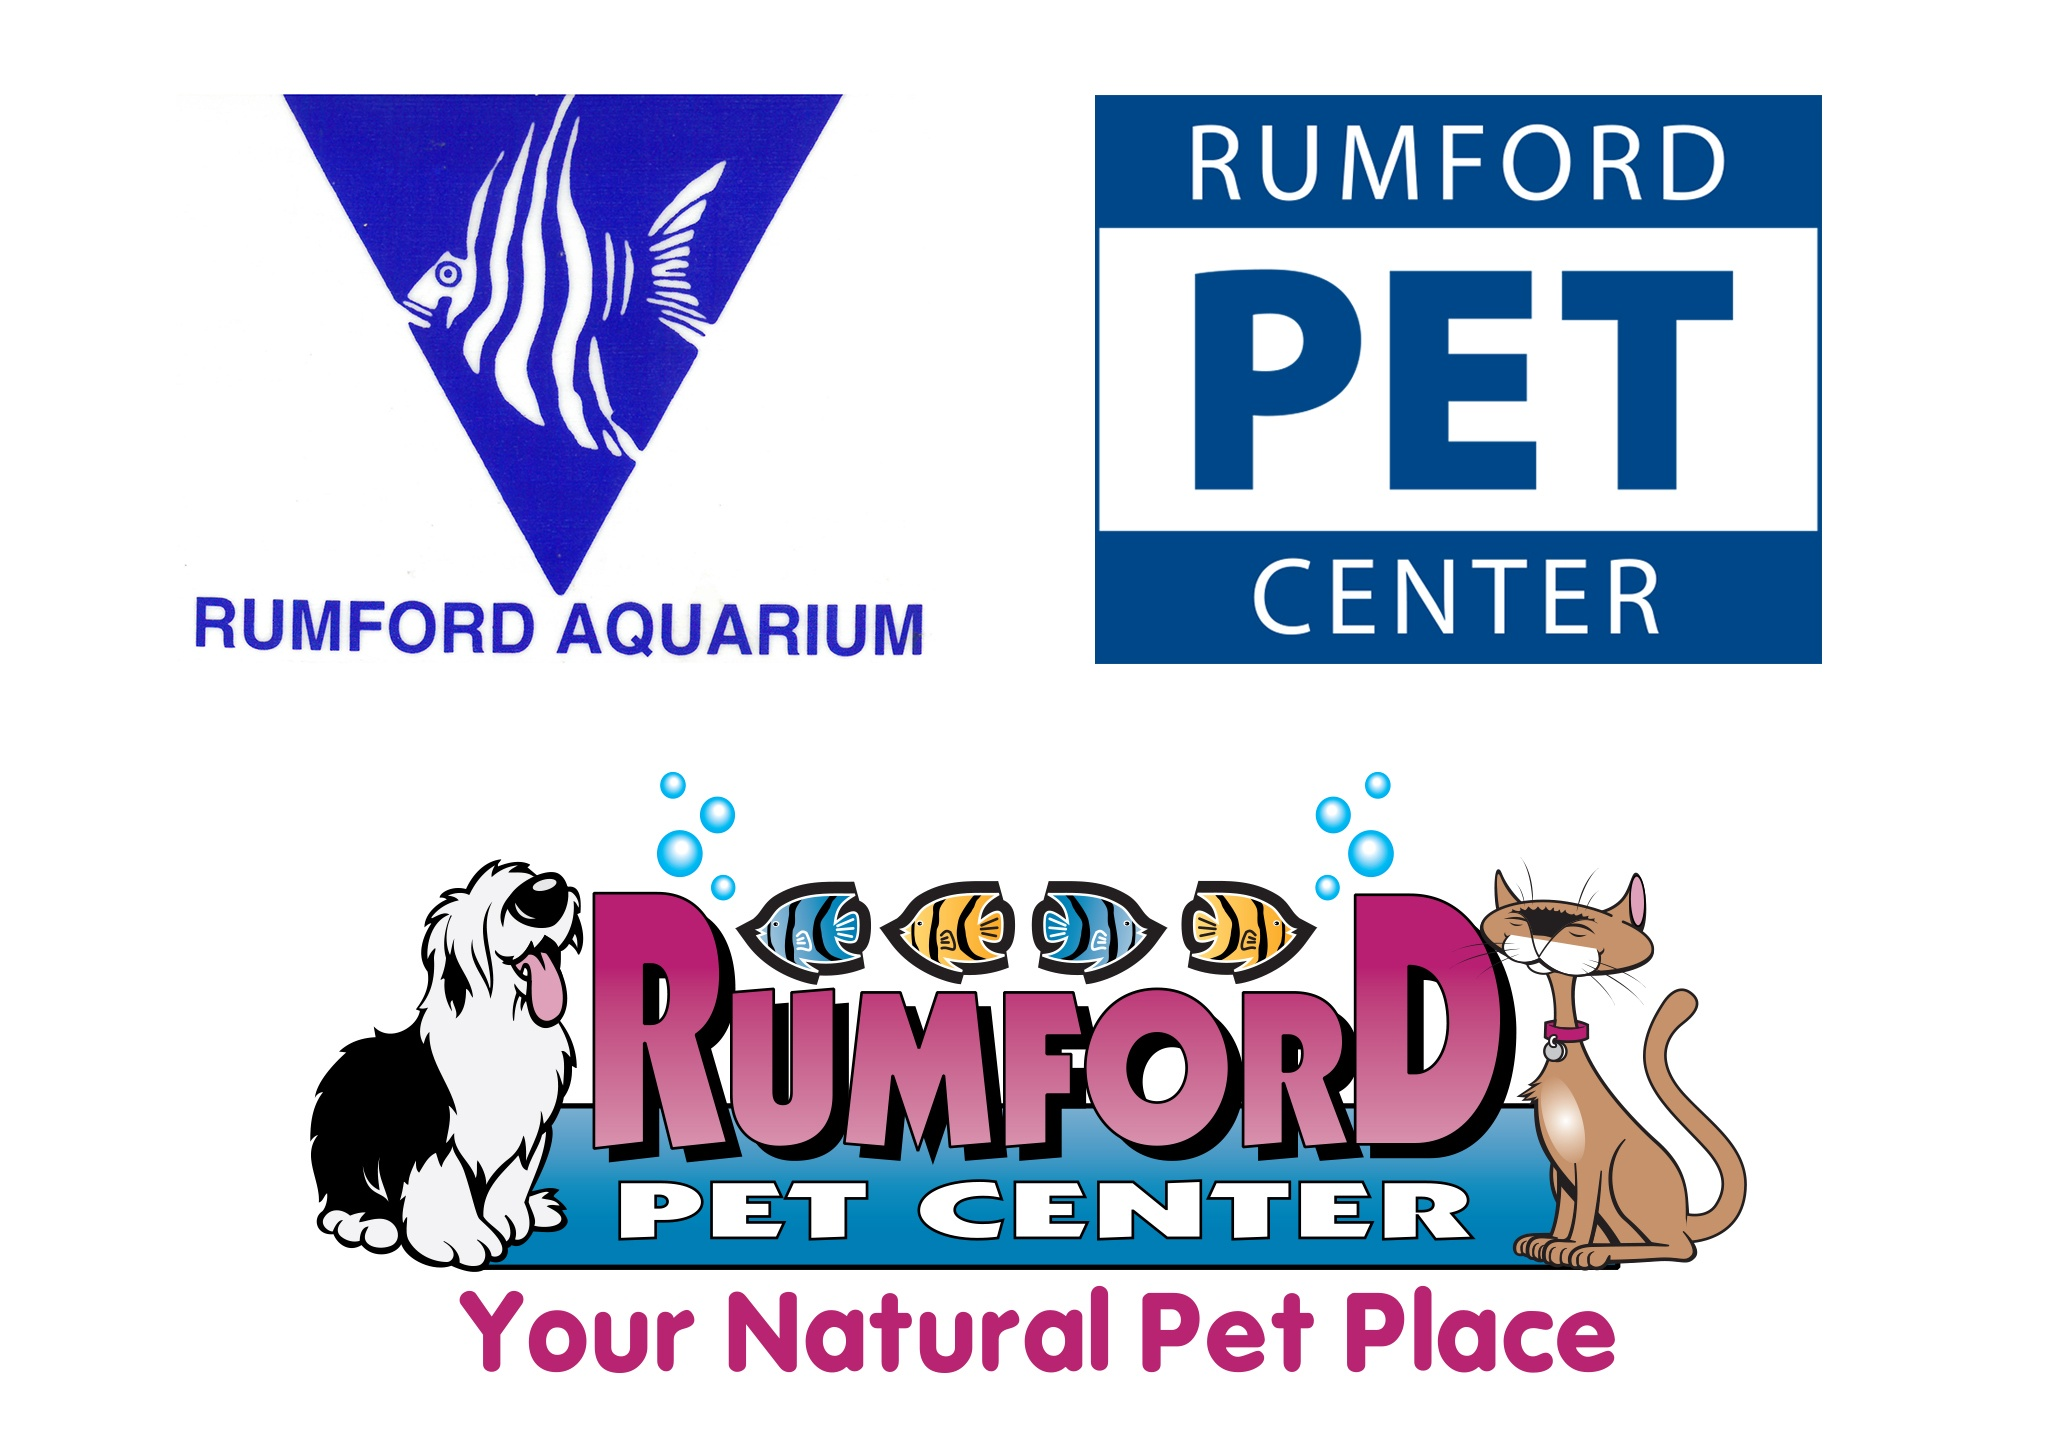 Rumford Logos Through the Years